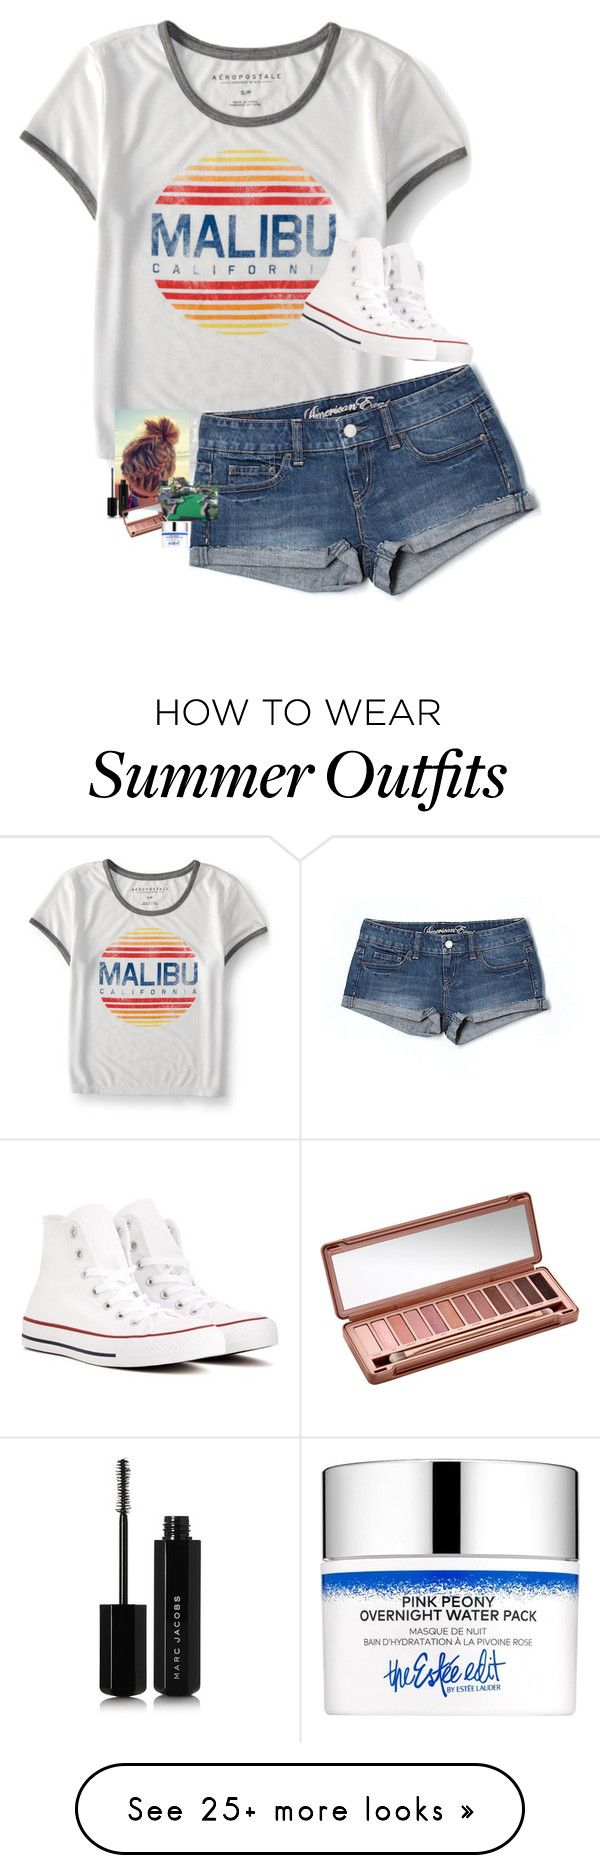 """Ootd tomorrow?"" by gracielu103 on Polyvore featuring Aéropostale, ..."